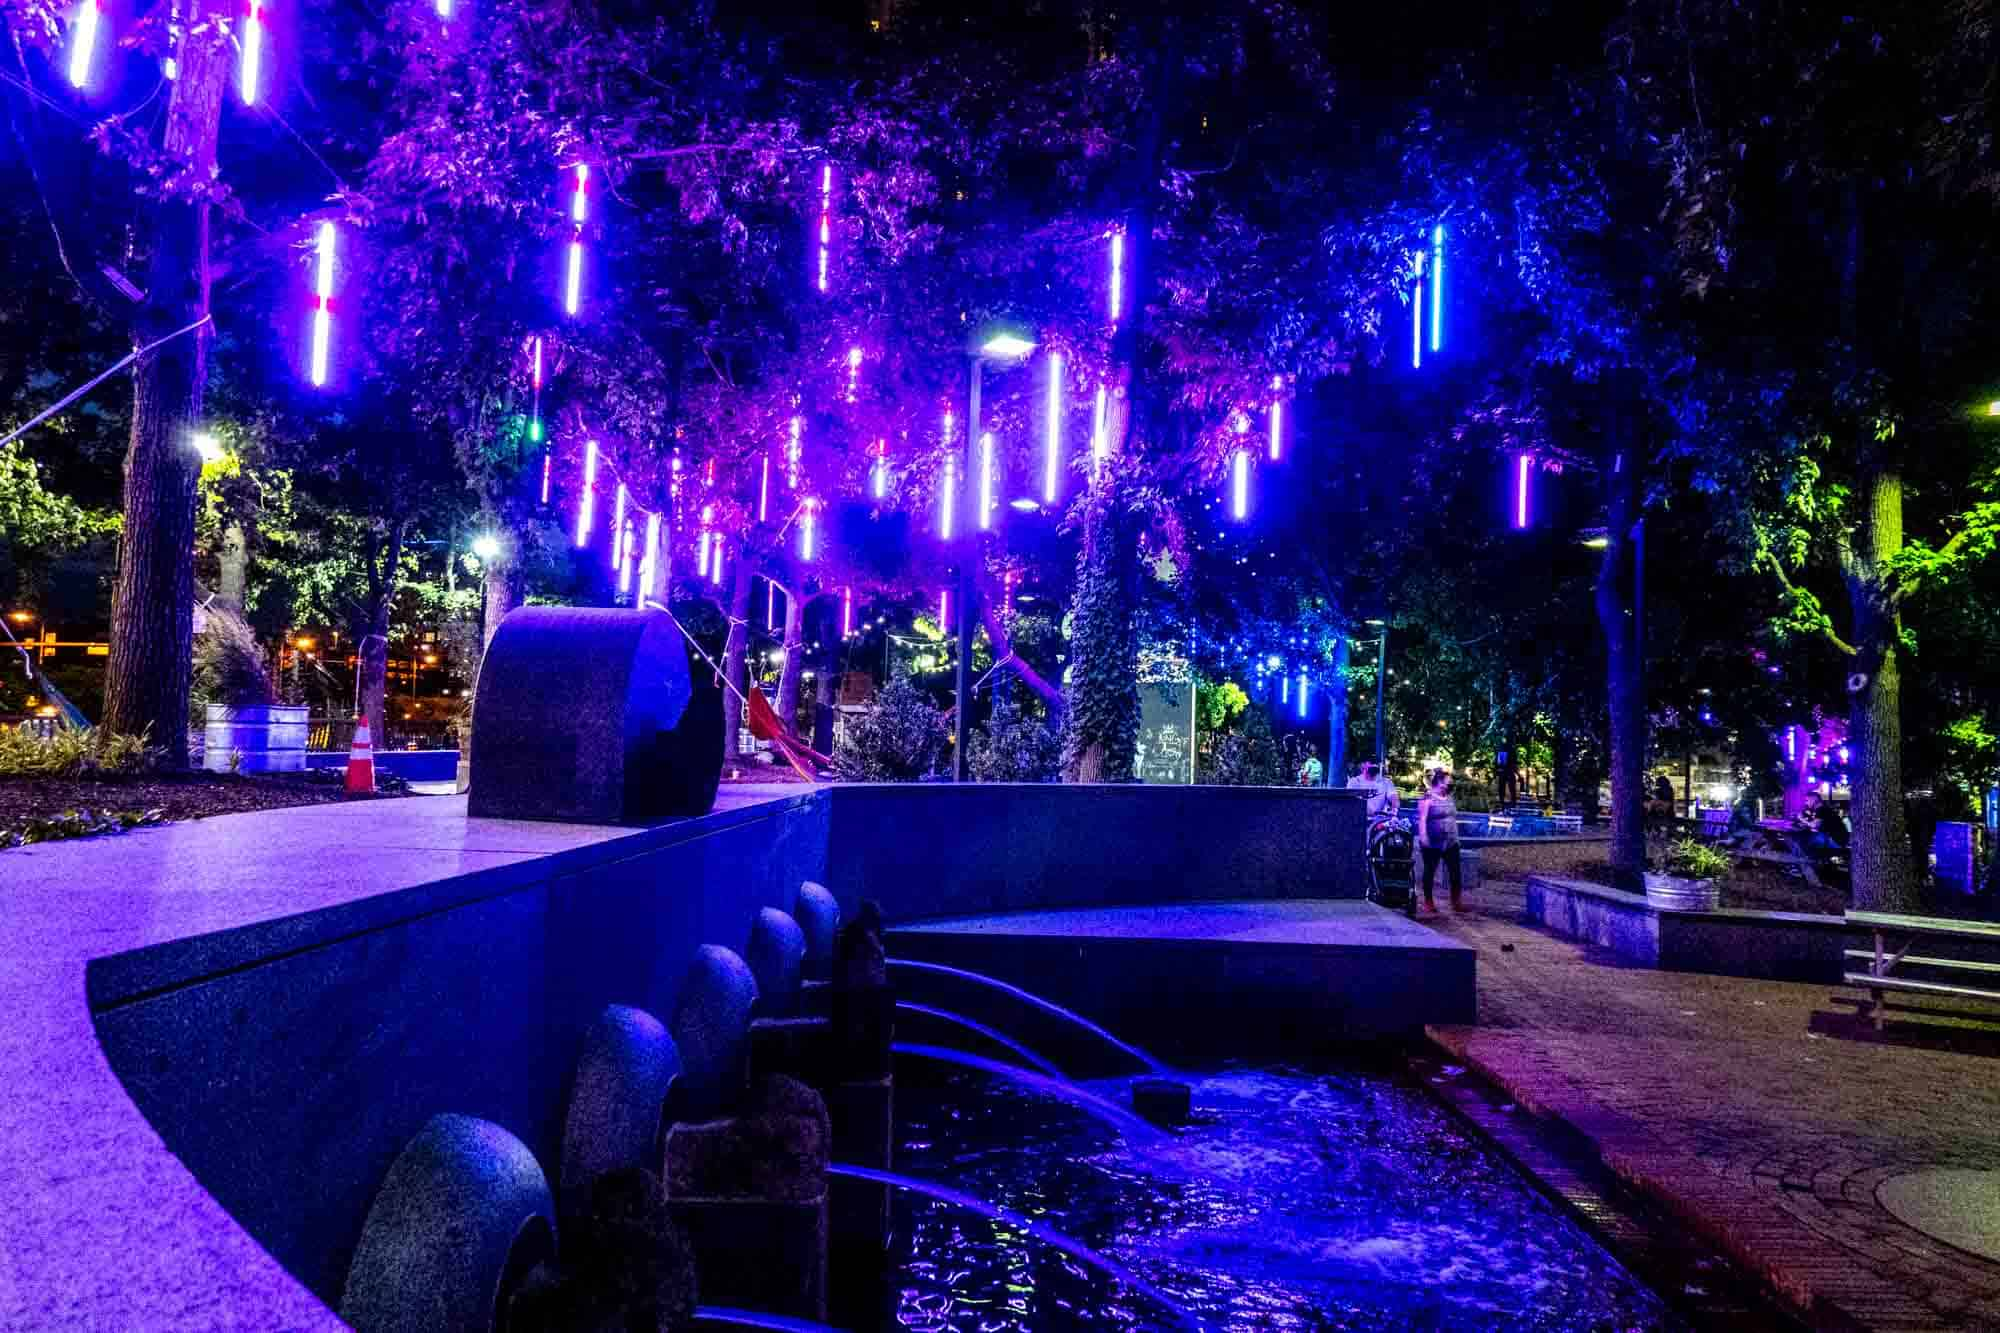 Fountain at night with blue lights